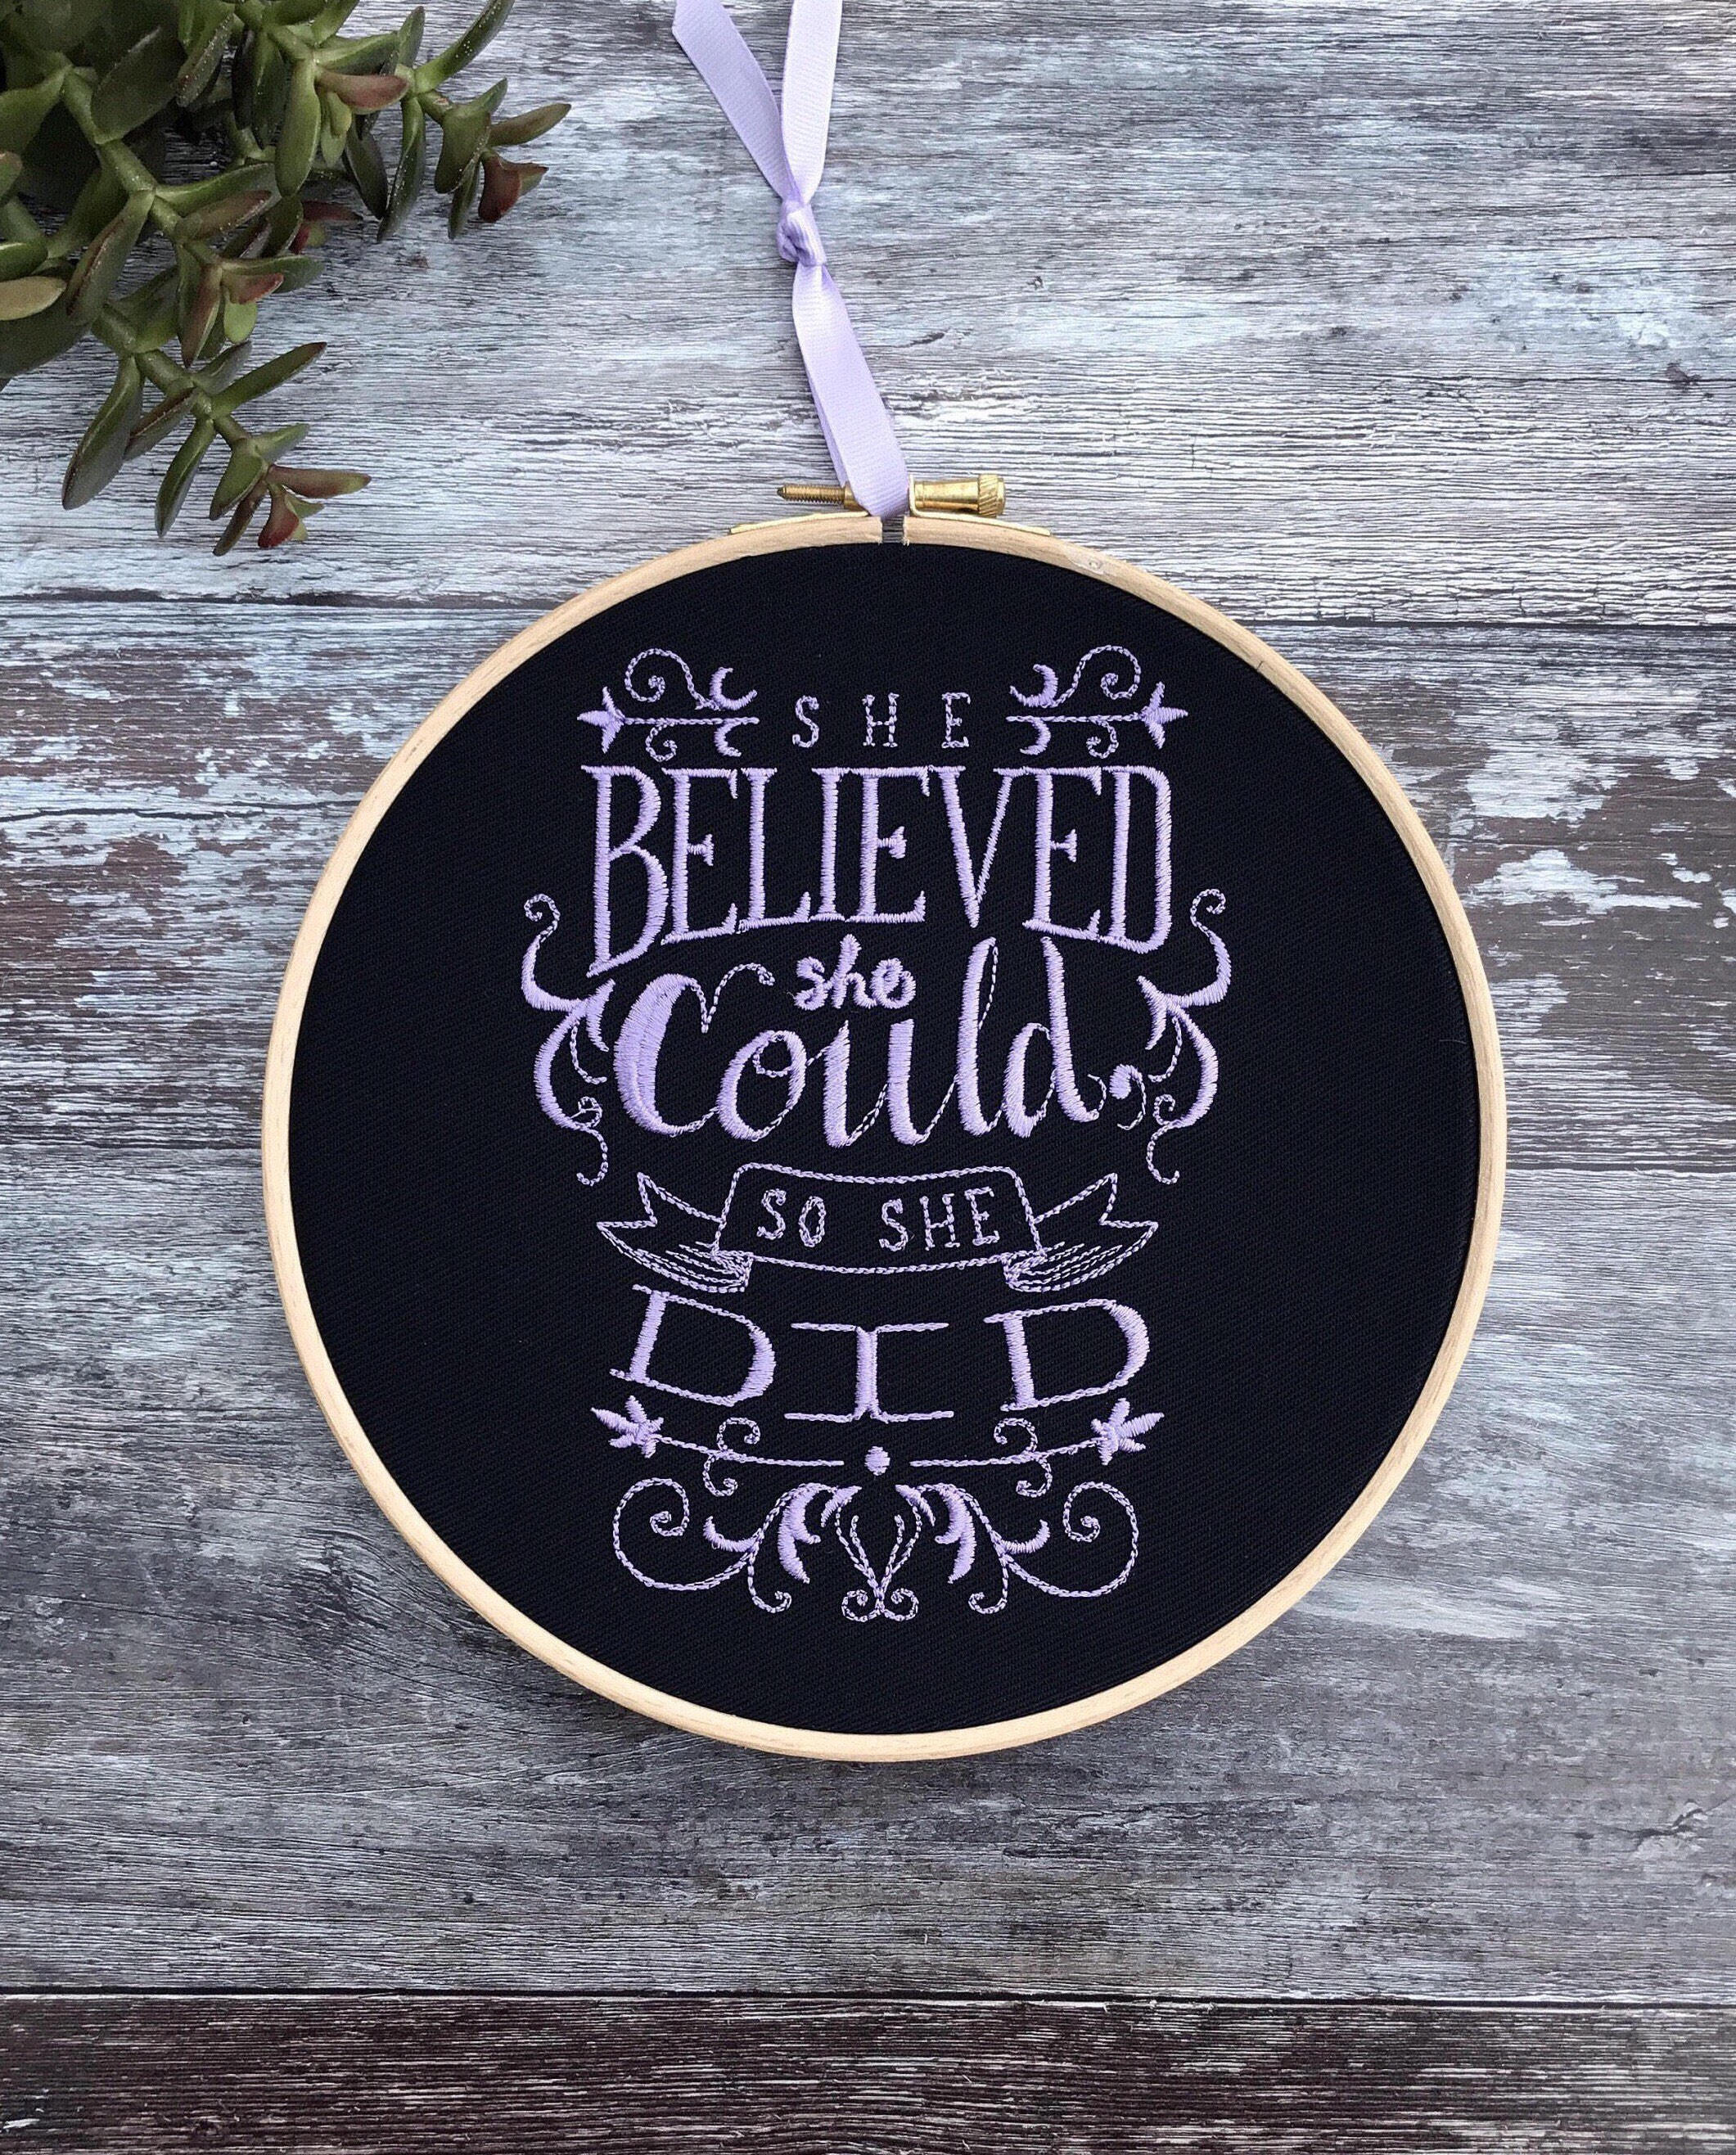 She believed, she could and so she did, Embroidery hoop art gift